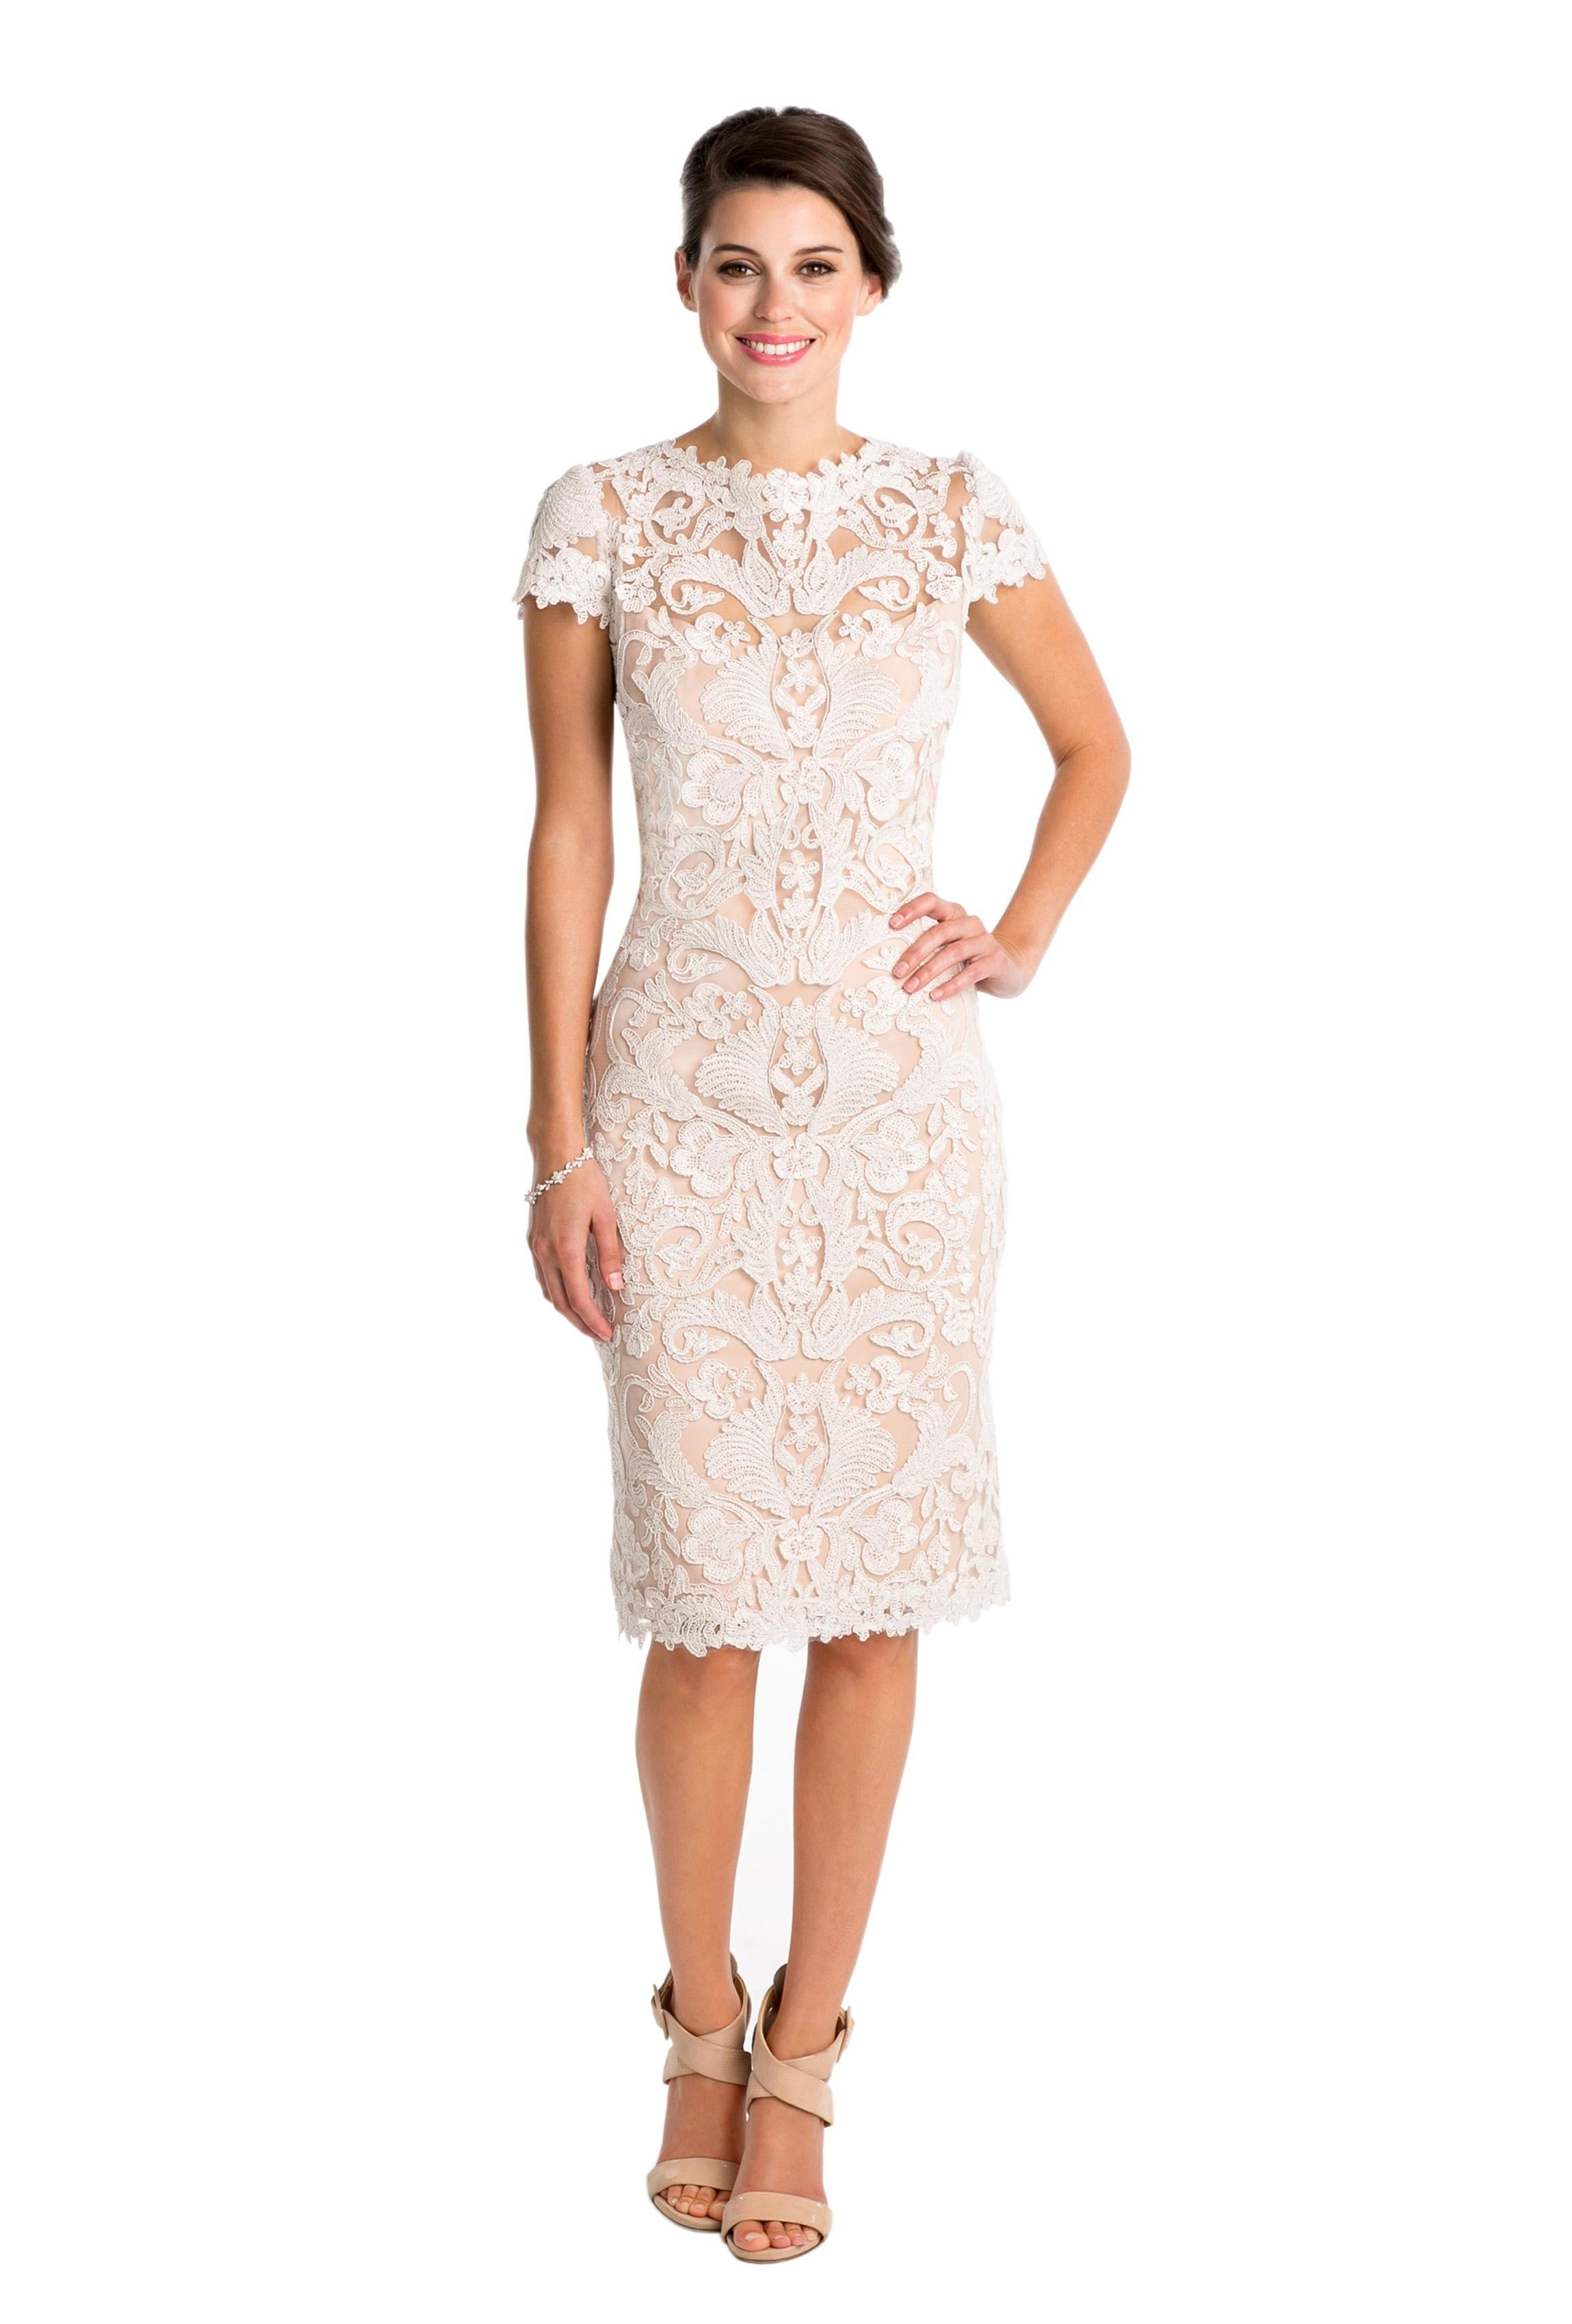 A Short Lace Dress With Ivory Over Petal Sheath And Cap Sleeves For Wedding Looks Affordable Designer Bridesmaid Dresses To Or At Vow Be